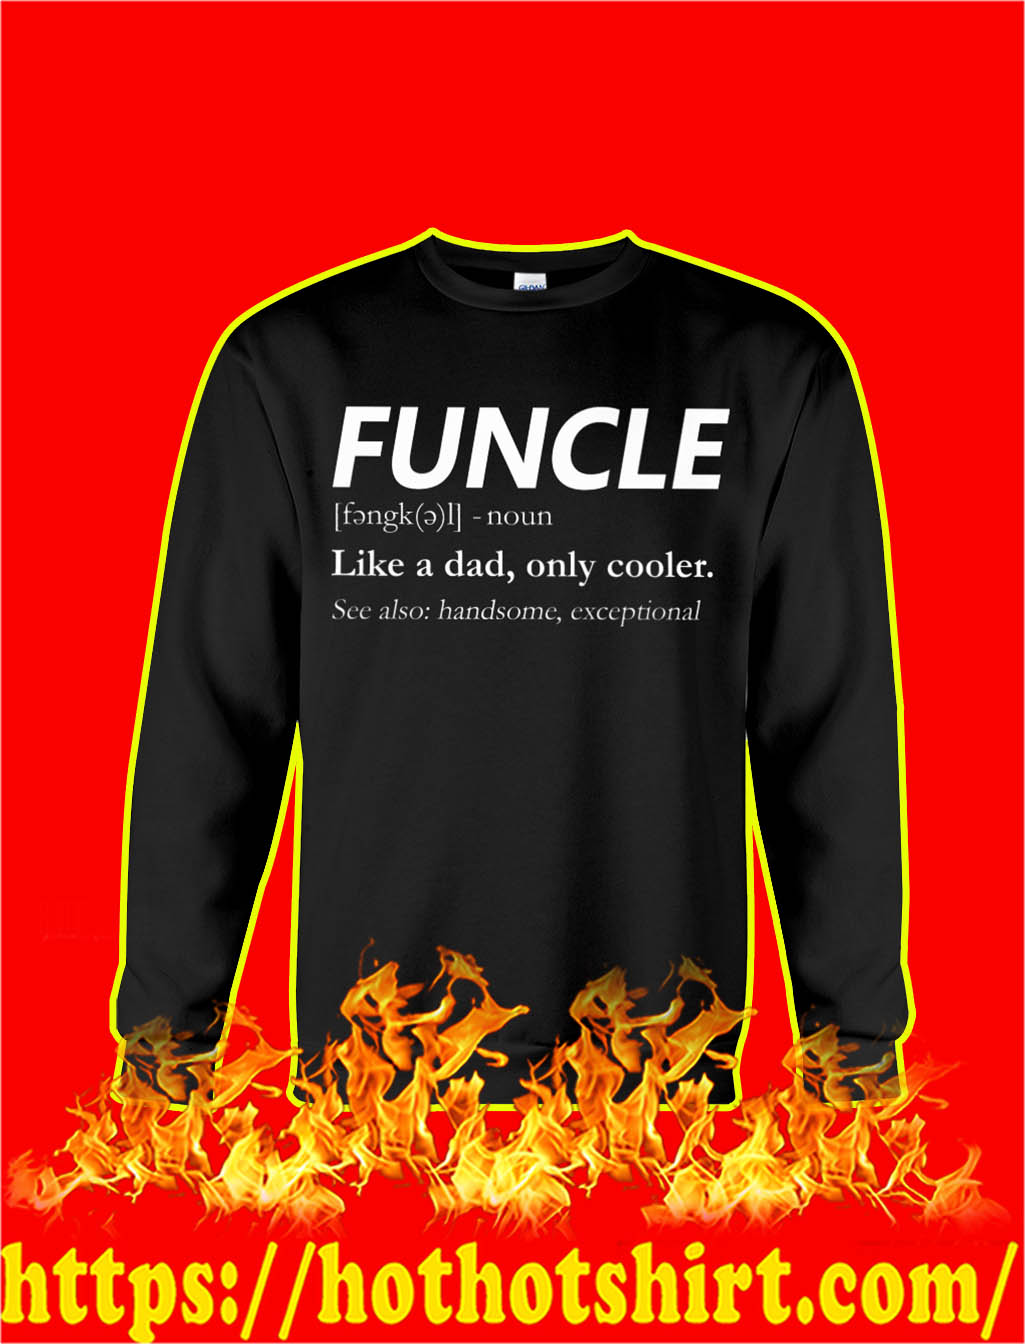 Funcle Like A Dad Only Cooler sweatshirt